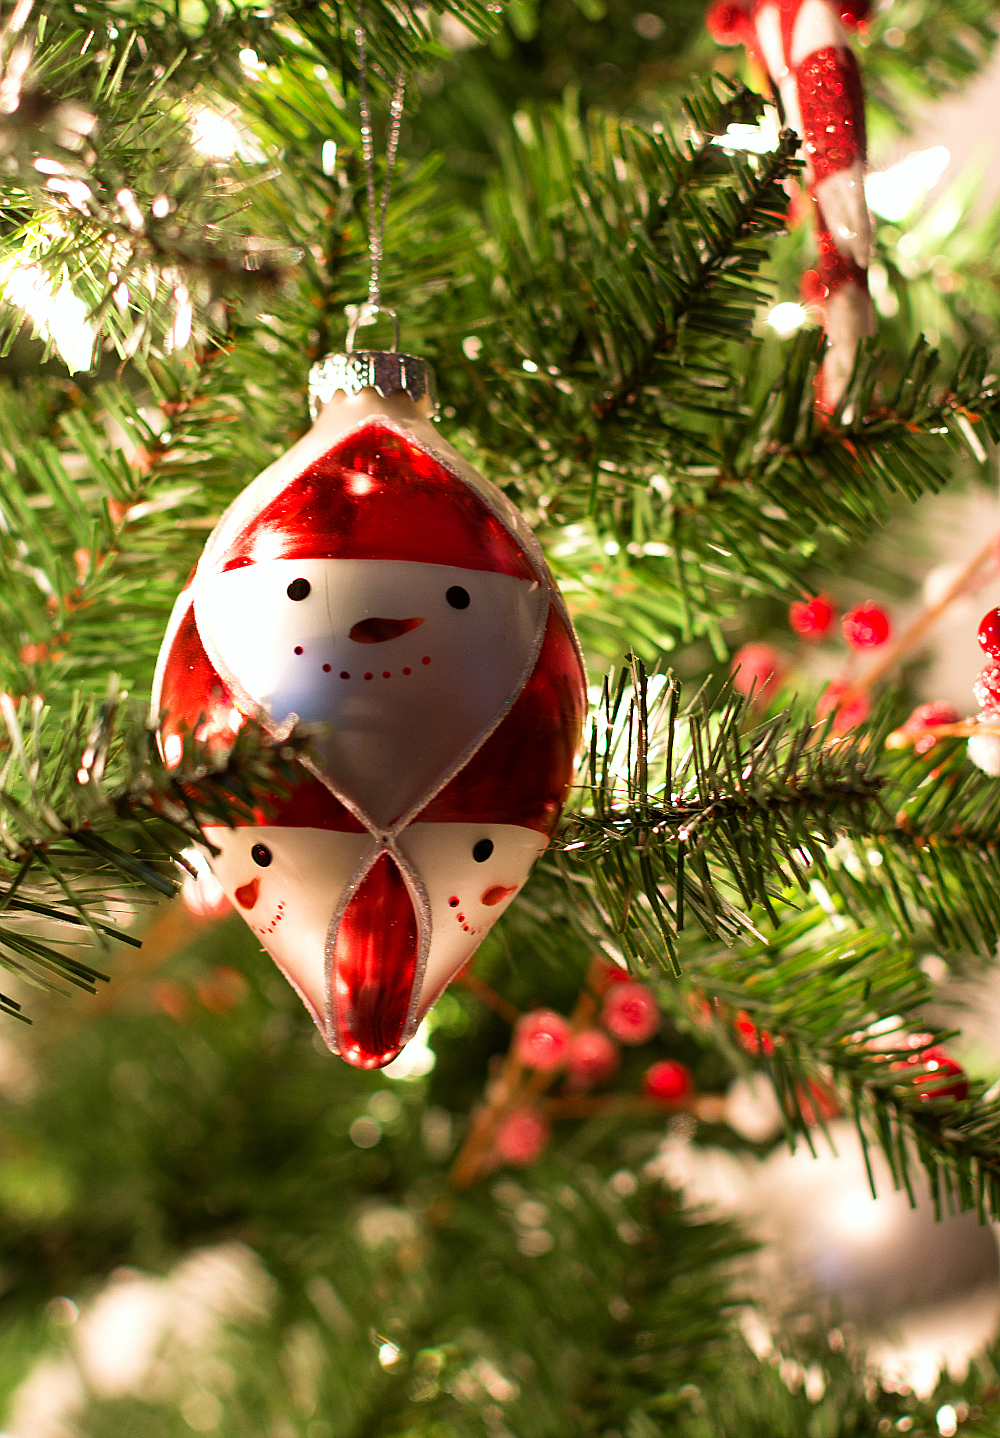 Red and White Christmas Tree Ornaments